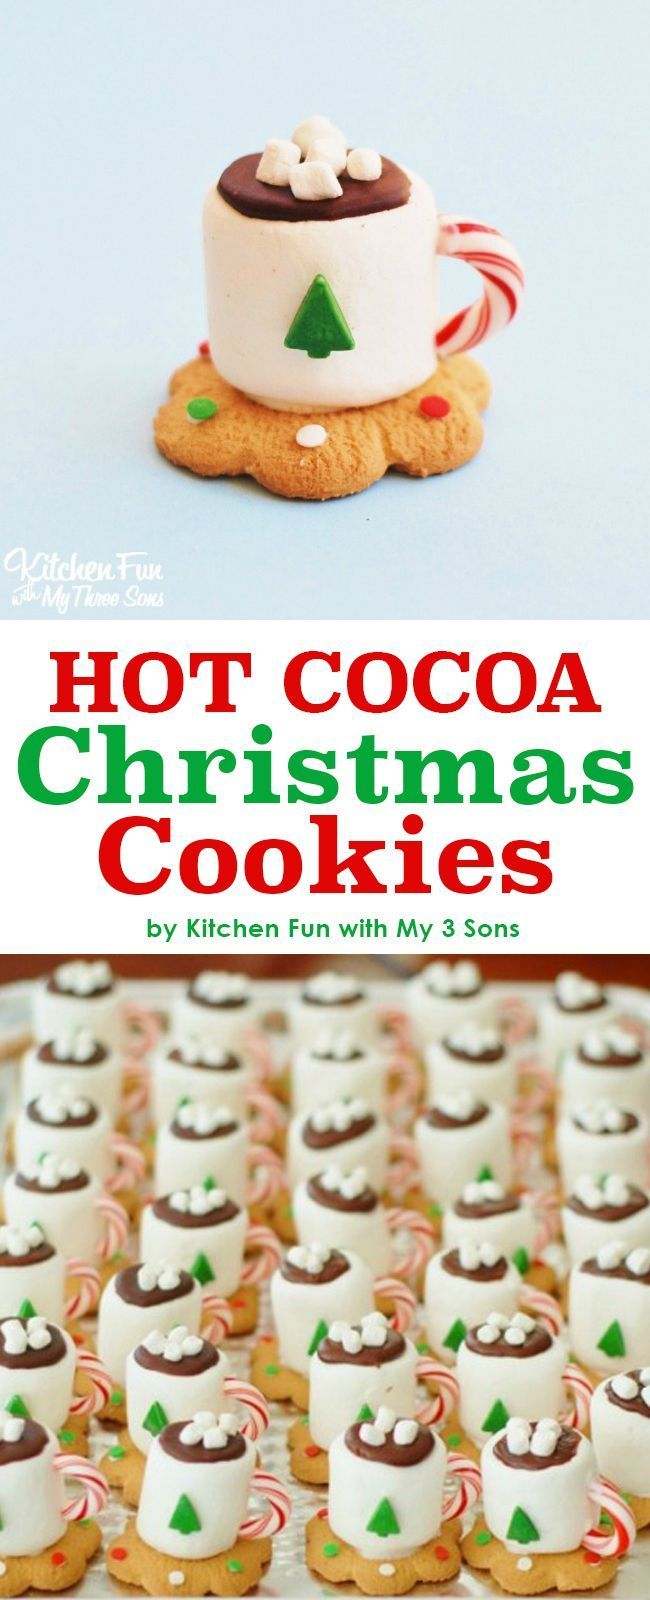 Christmas Party Ideas For School Part - 46: ... Christmas Cookies Made With Marshmallows. Looks Just Like A Tiny Cup Of  Hot Chocolate. Perfect Holiday Treat For A School Party Or Christmas Party.